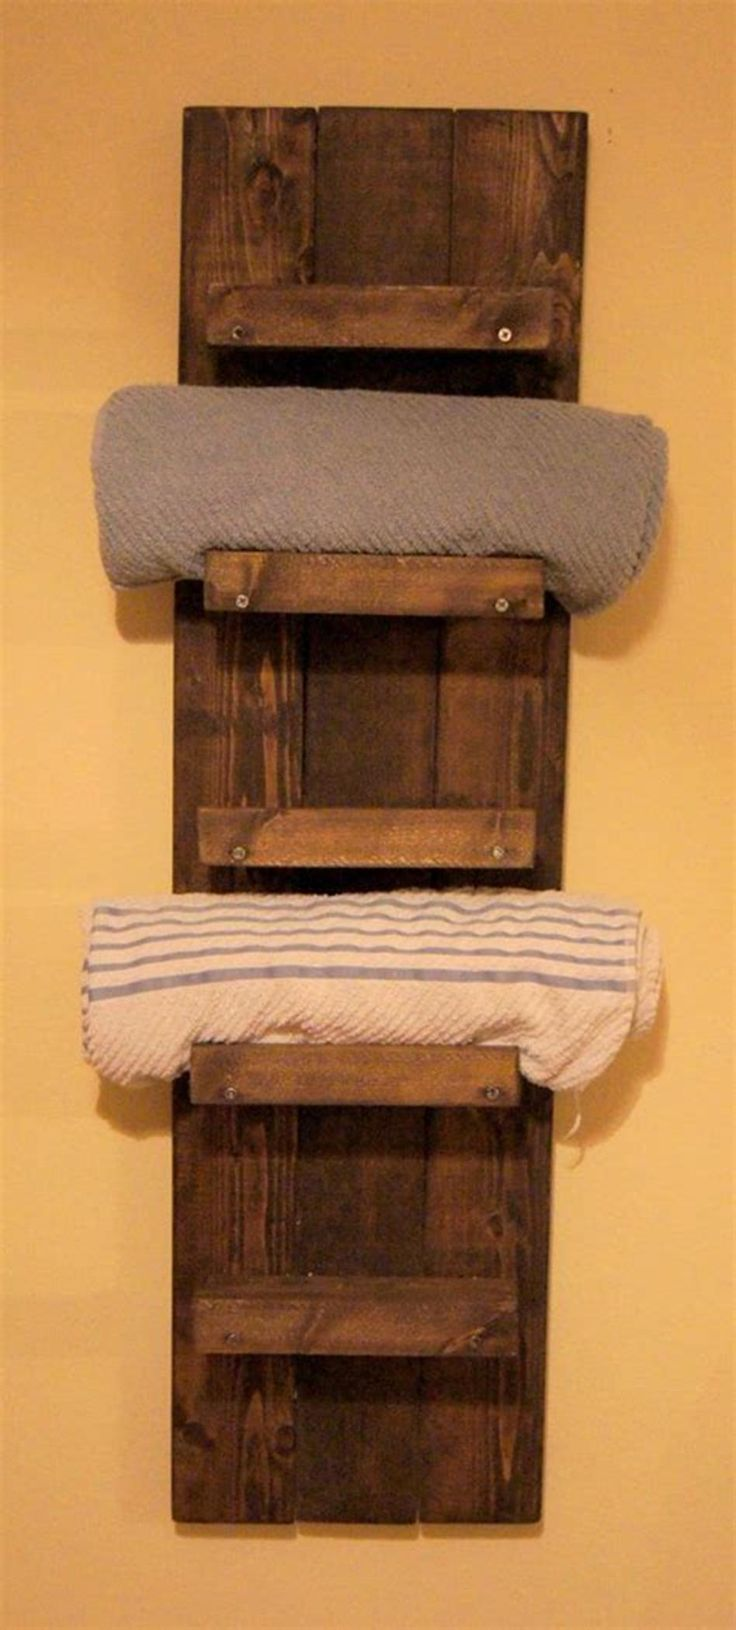 42 Awesome Bathroom Cabinet With Towel Rack Ideas Towel Holder Bathroom Diy Towel Rack Wooden Bathroom Shelves